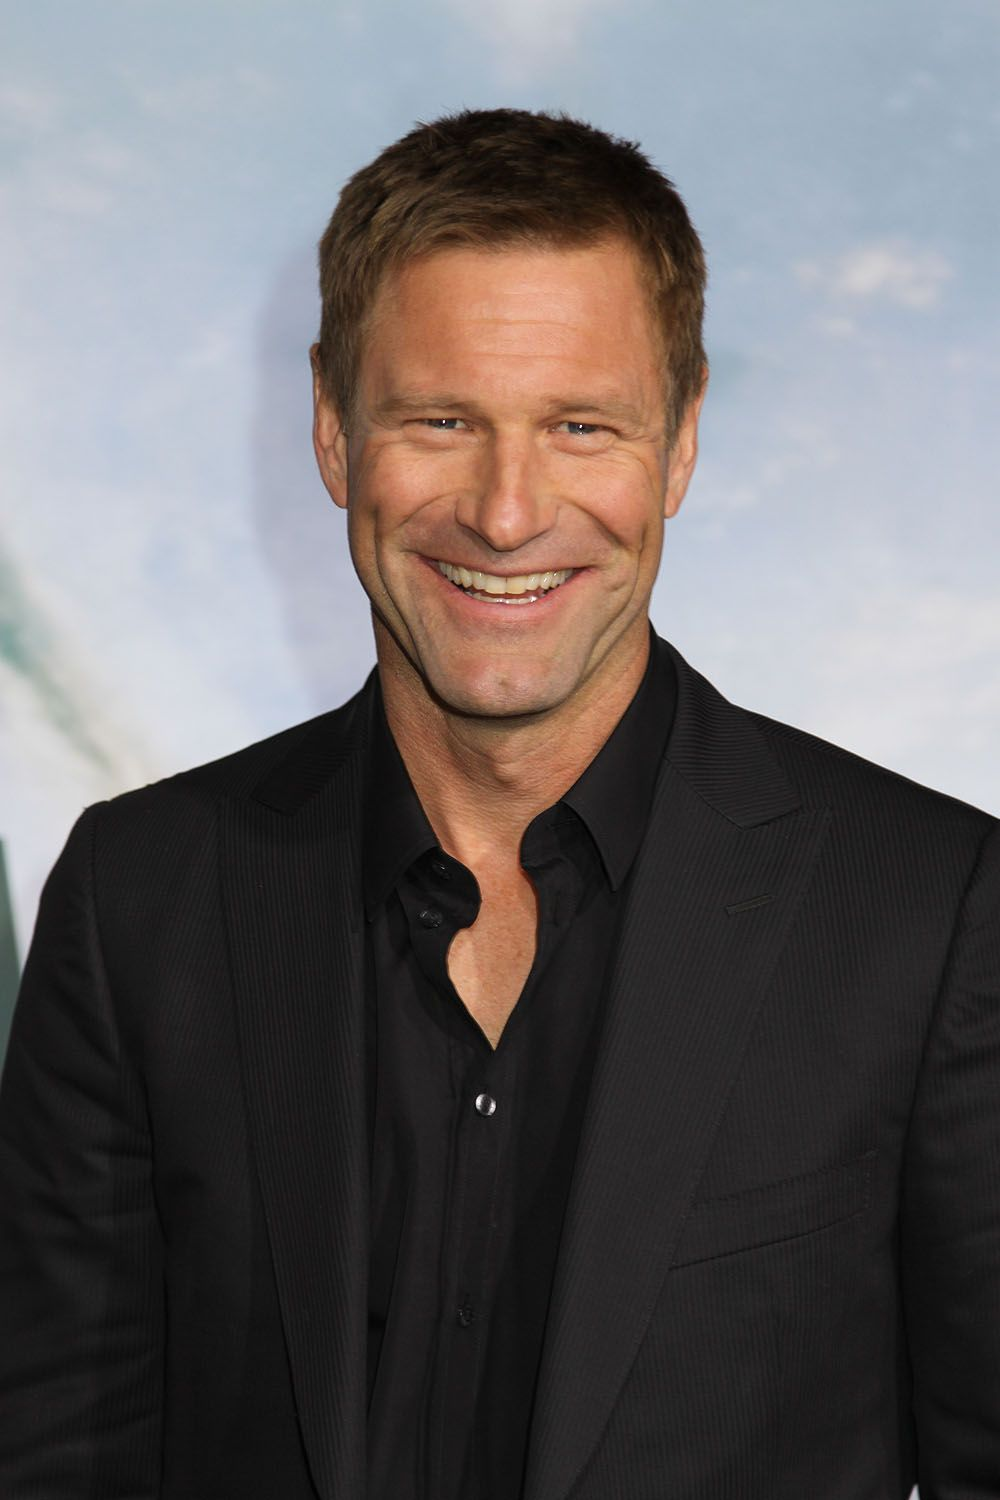 aaron eckhart filmeaaron eckhart height, aaron eckhart фильмография, aaron eckhart 2016, aaron eckhart gif, aaron eckhart movies, aaron eckhart filme, aaron eckhart sinemalar, aaron eckhart youtube, aaron eckhart wiki, aaron eckhart and jennifer aniston, aaron eckhart nationality, aaron eckhart sully, aaron eckhart boyfriend, aaron eckhart photography, aaron eckhart best movies, aaron eckhart wicker man, aaron eckhart workout, aaron eckhart 2017, aaron eckhart filmography, aaron eckhart instagram